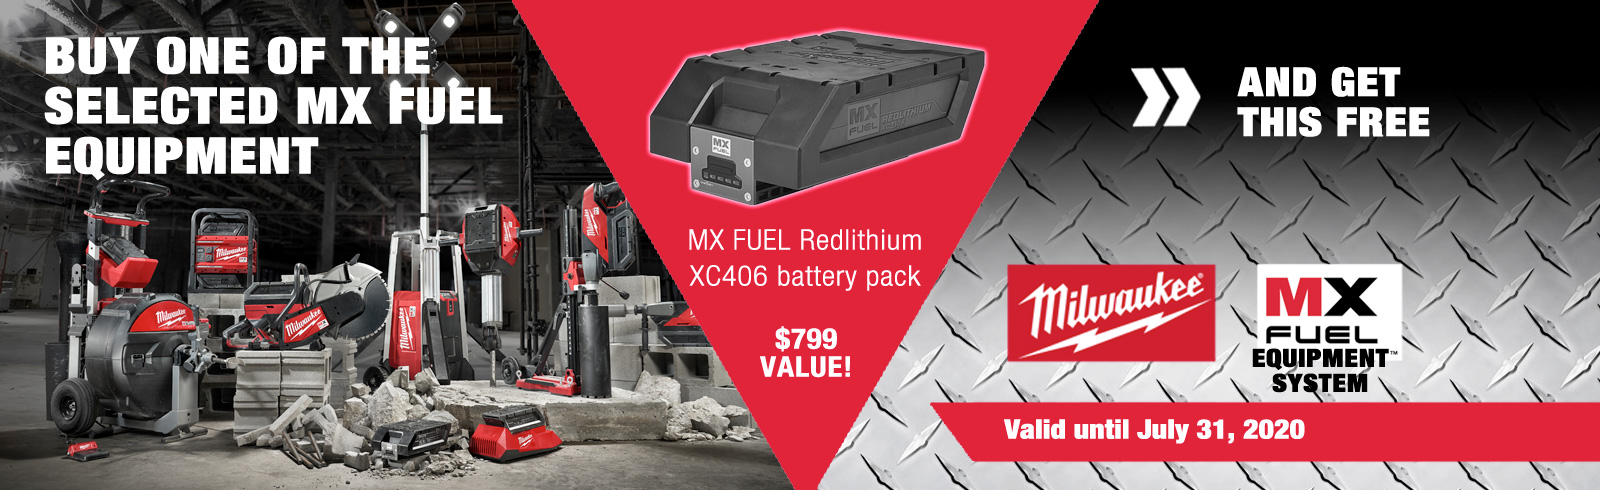 MX FUEL promotion and free battery pack until May 31 2020